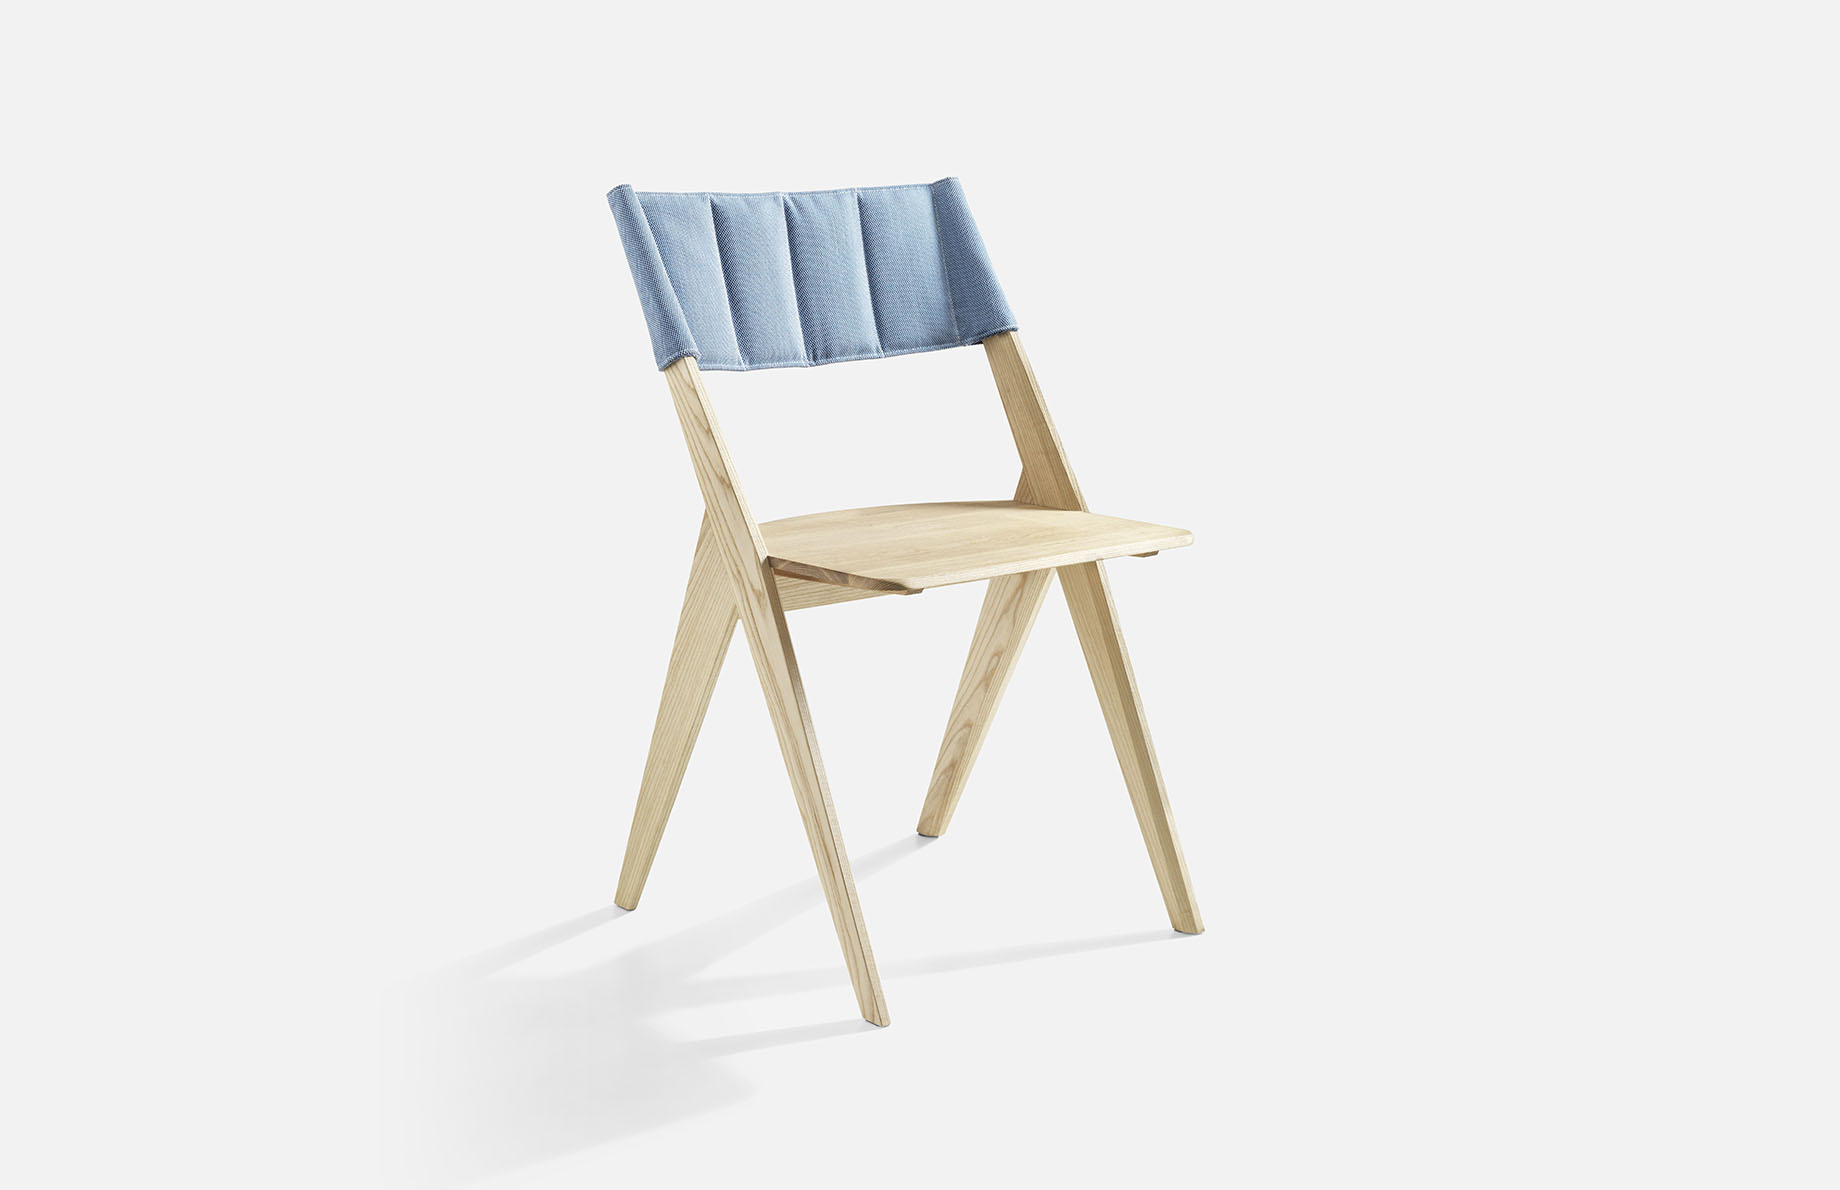 The Eder Chair